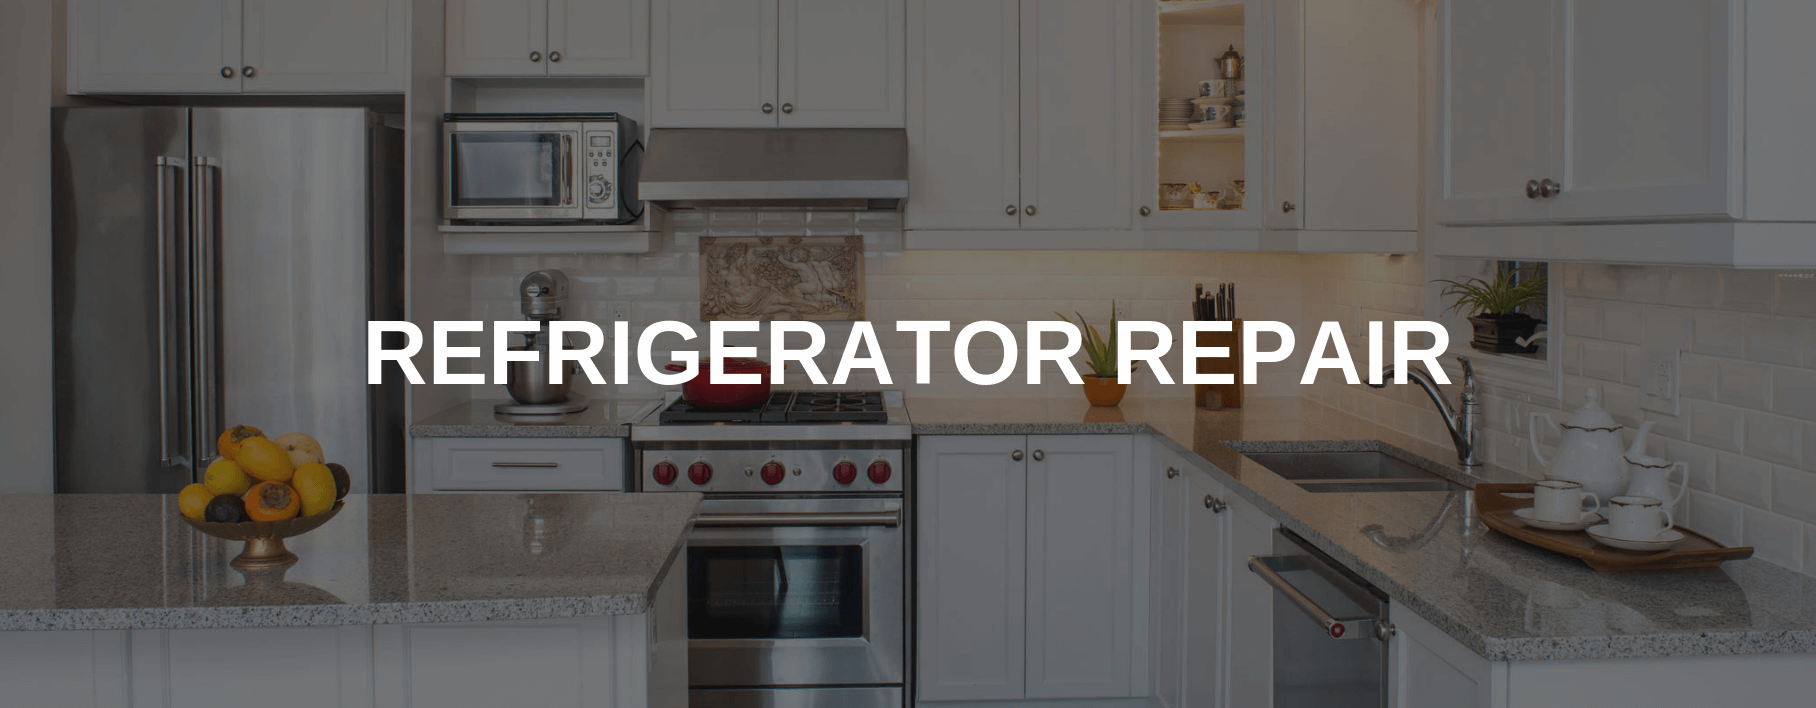 euless refrigerator repair